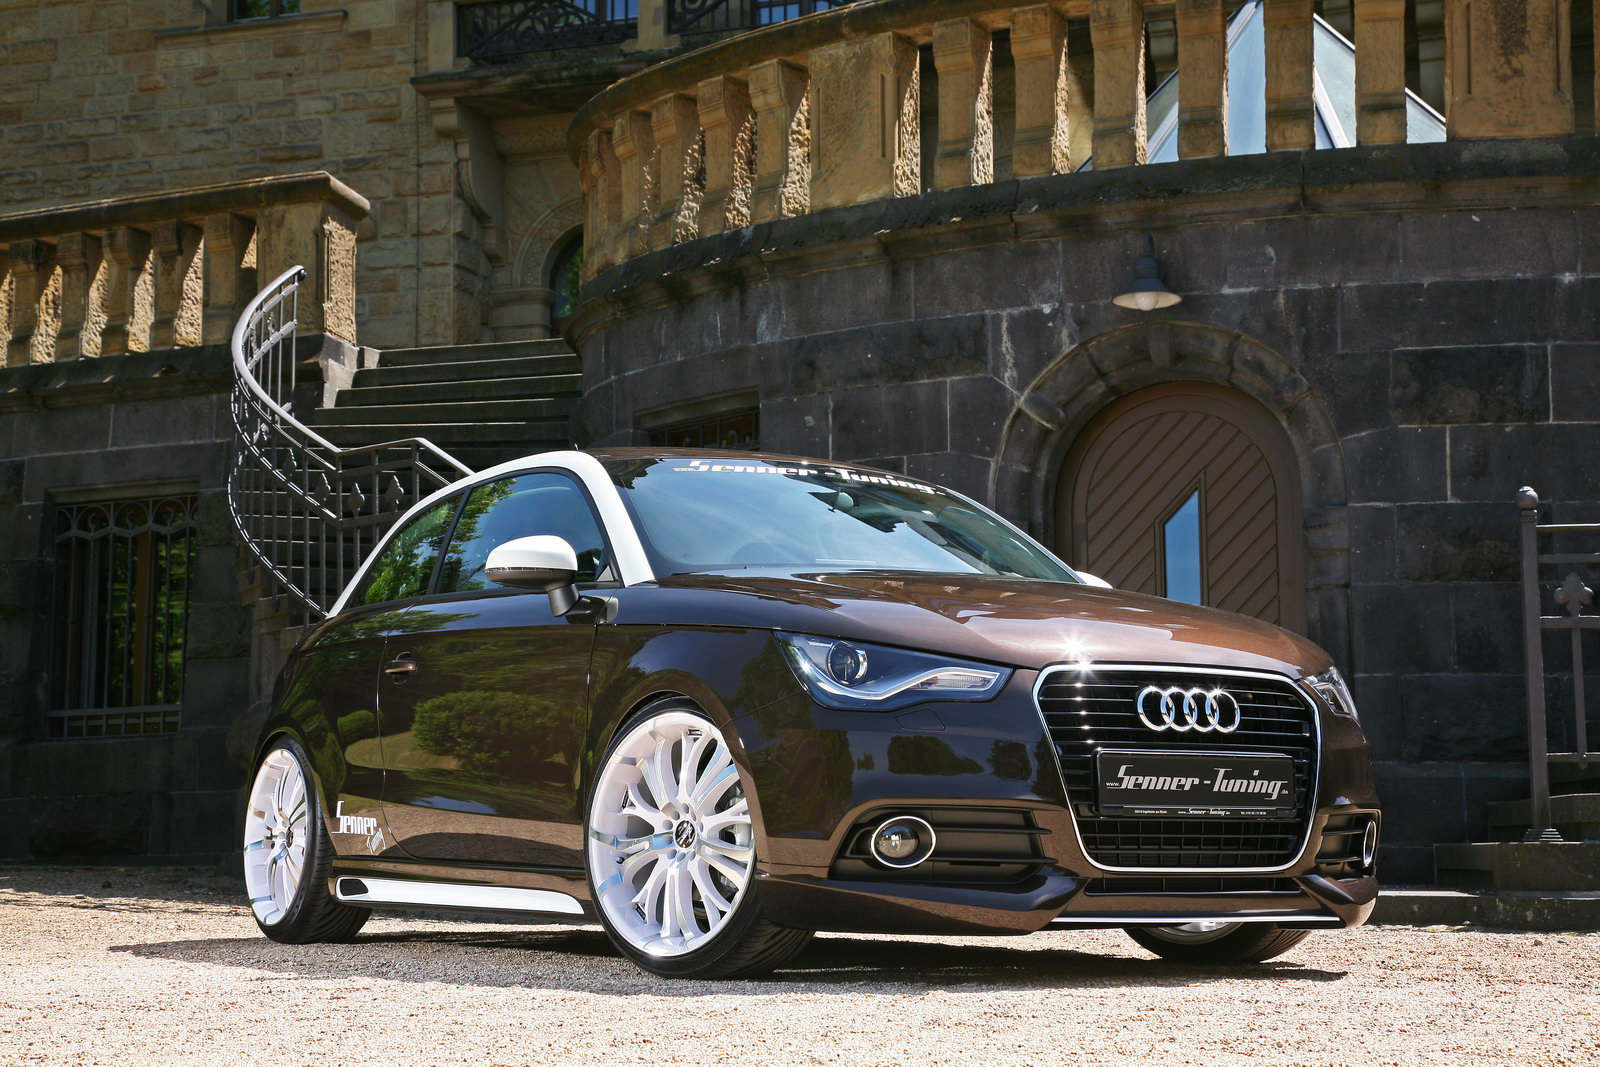 Audi A1 Senner Tuning 5 Senner  Launched Car Upgradation Kit